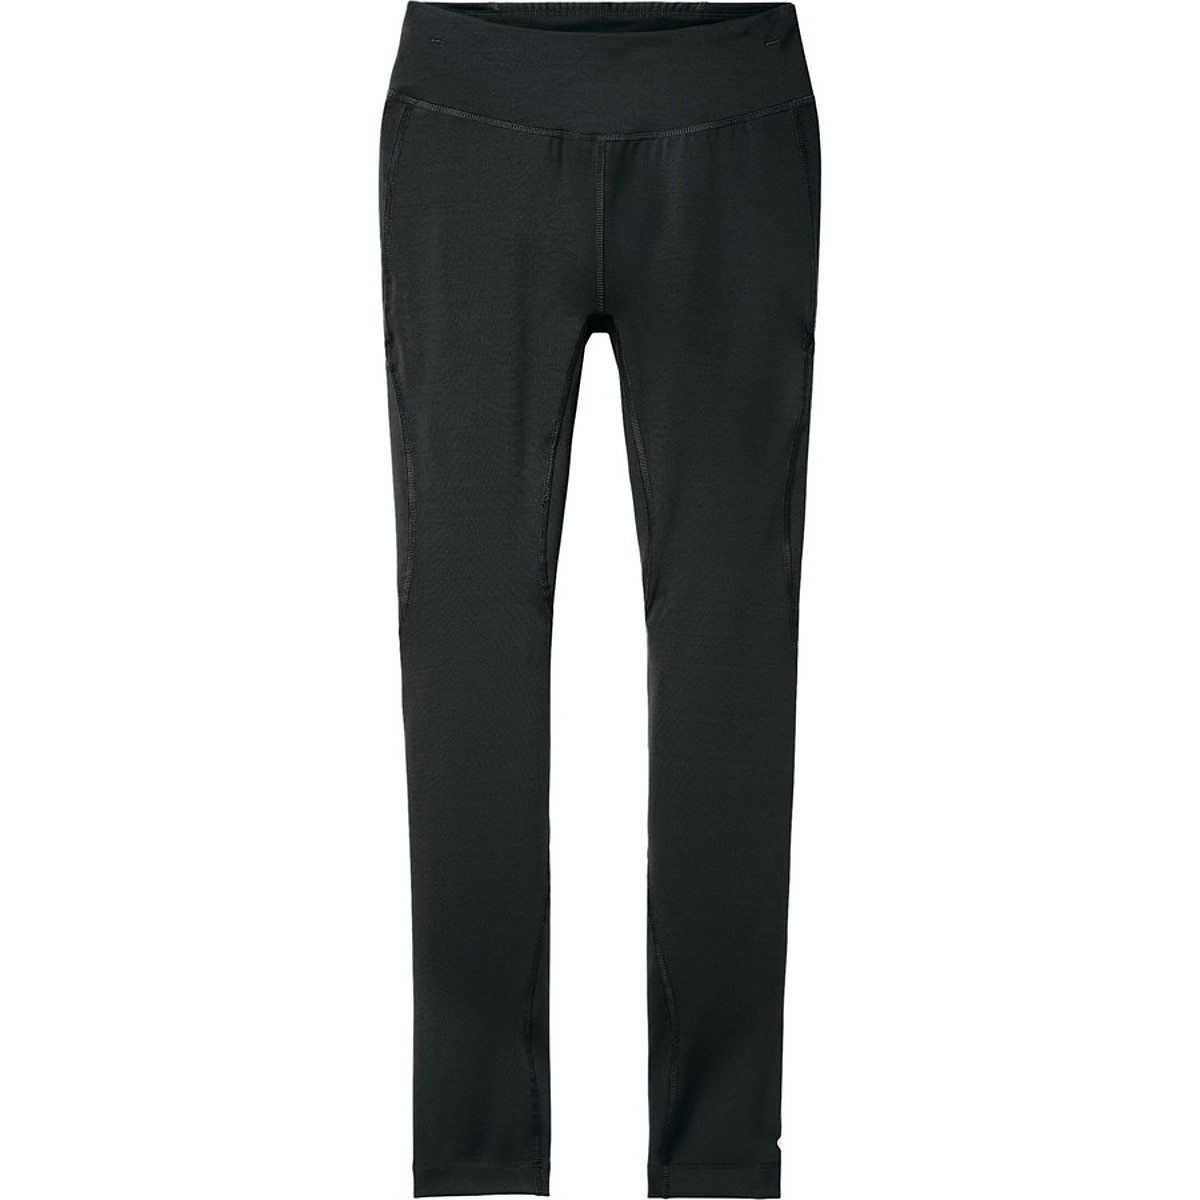 Moving Comfort Endurance Tight